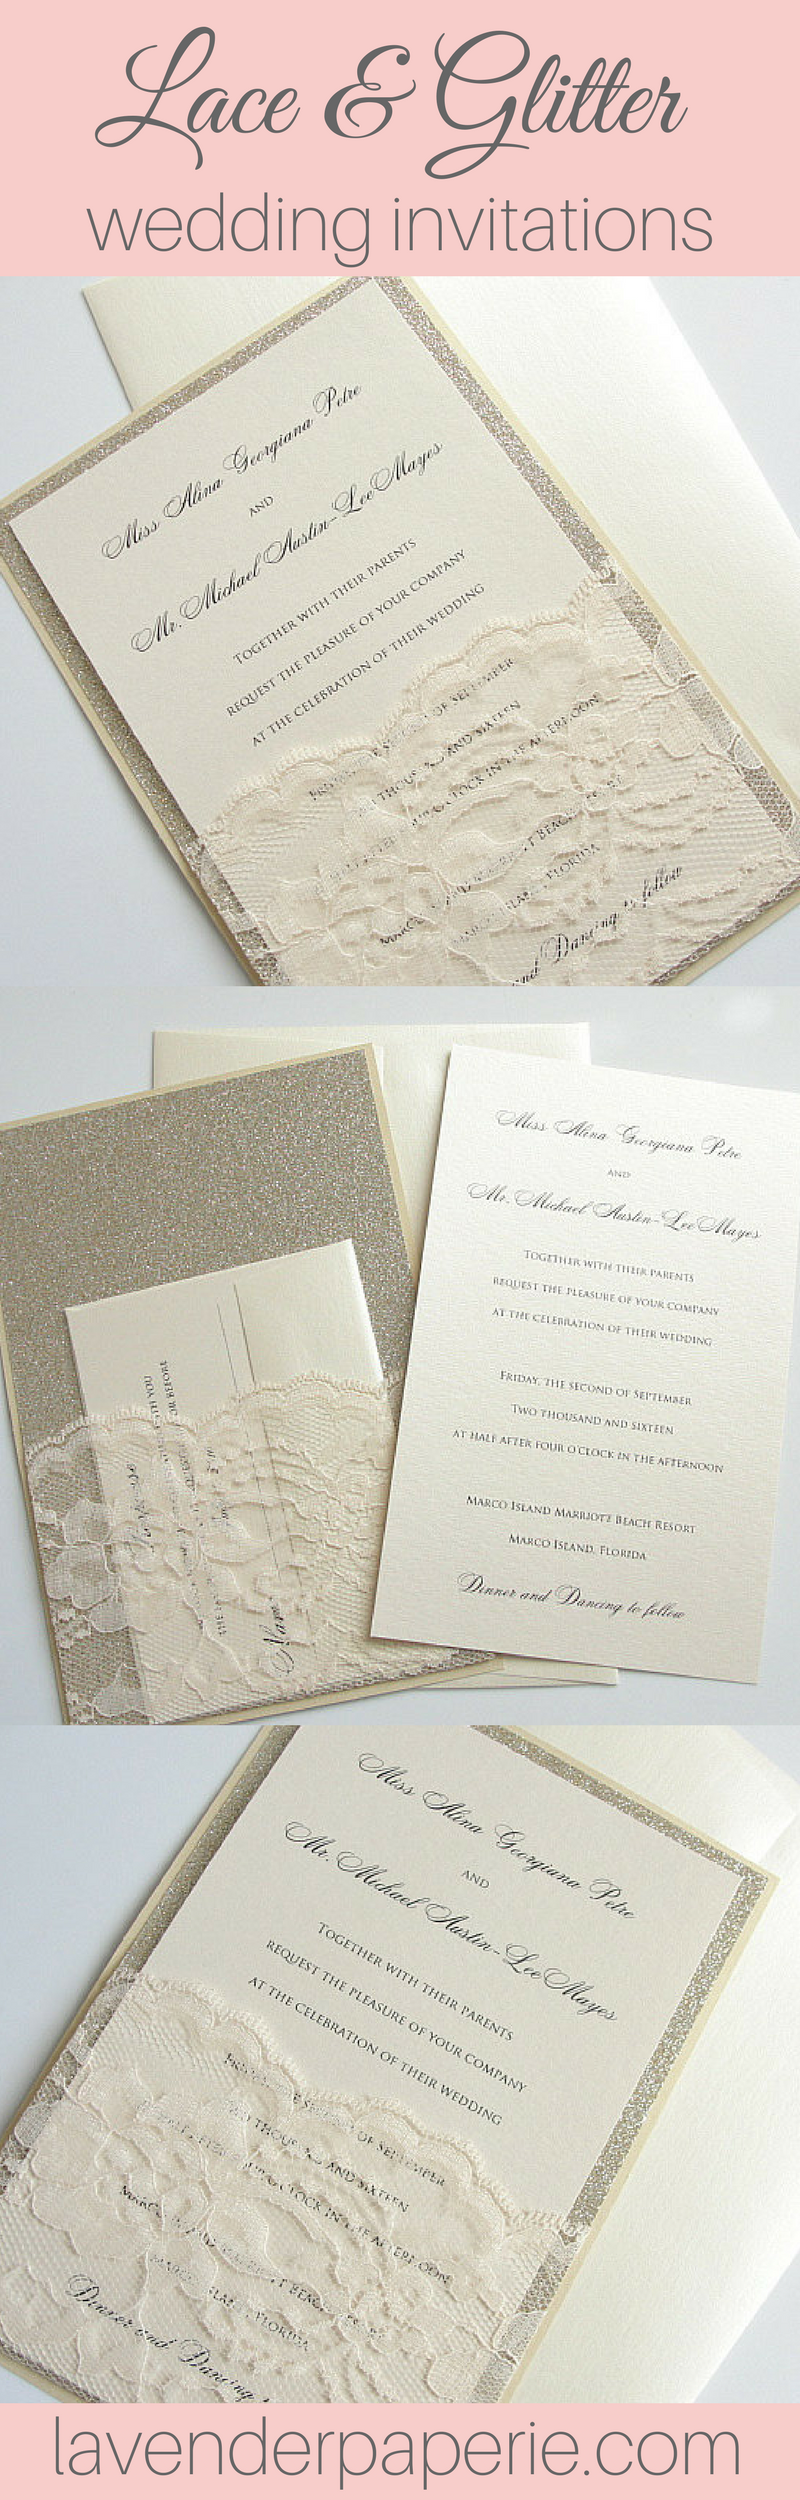 Polka dot wedding invitation modern snow snowfall